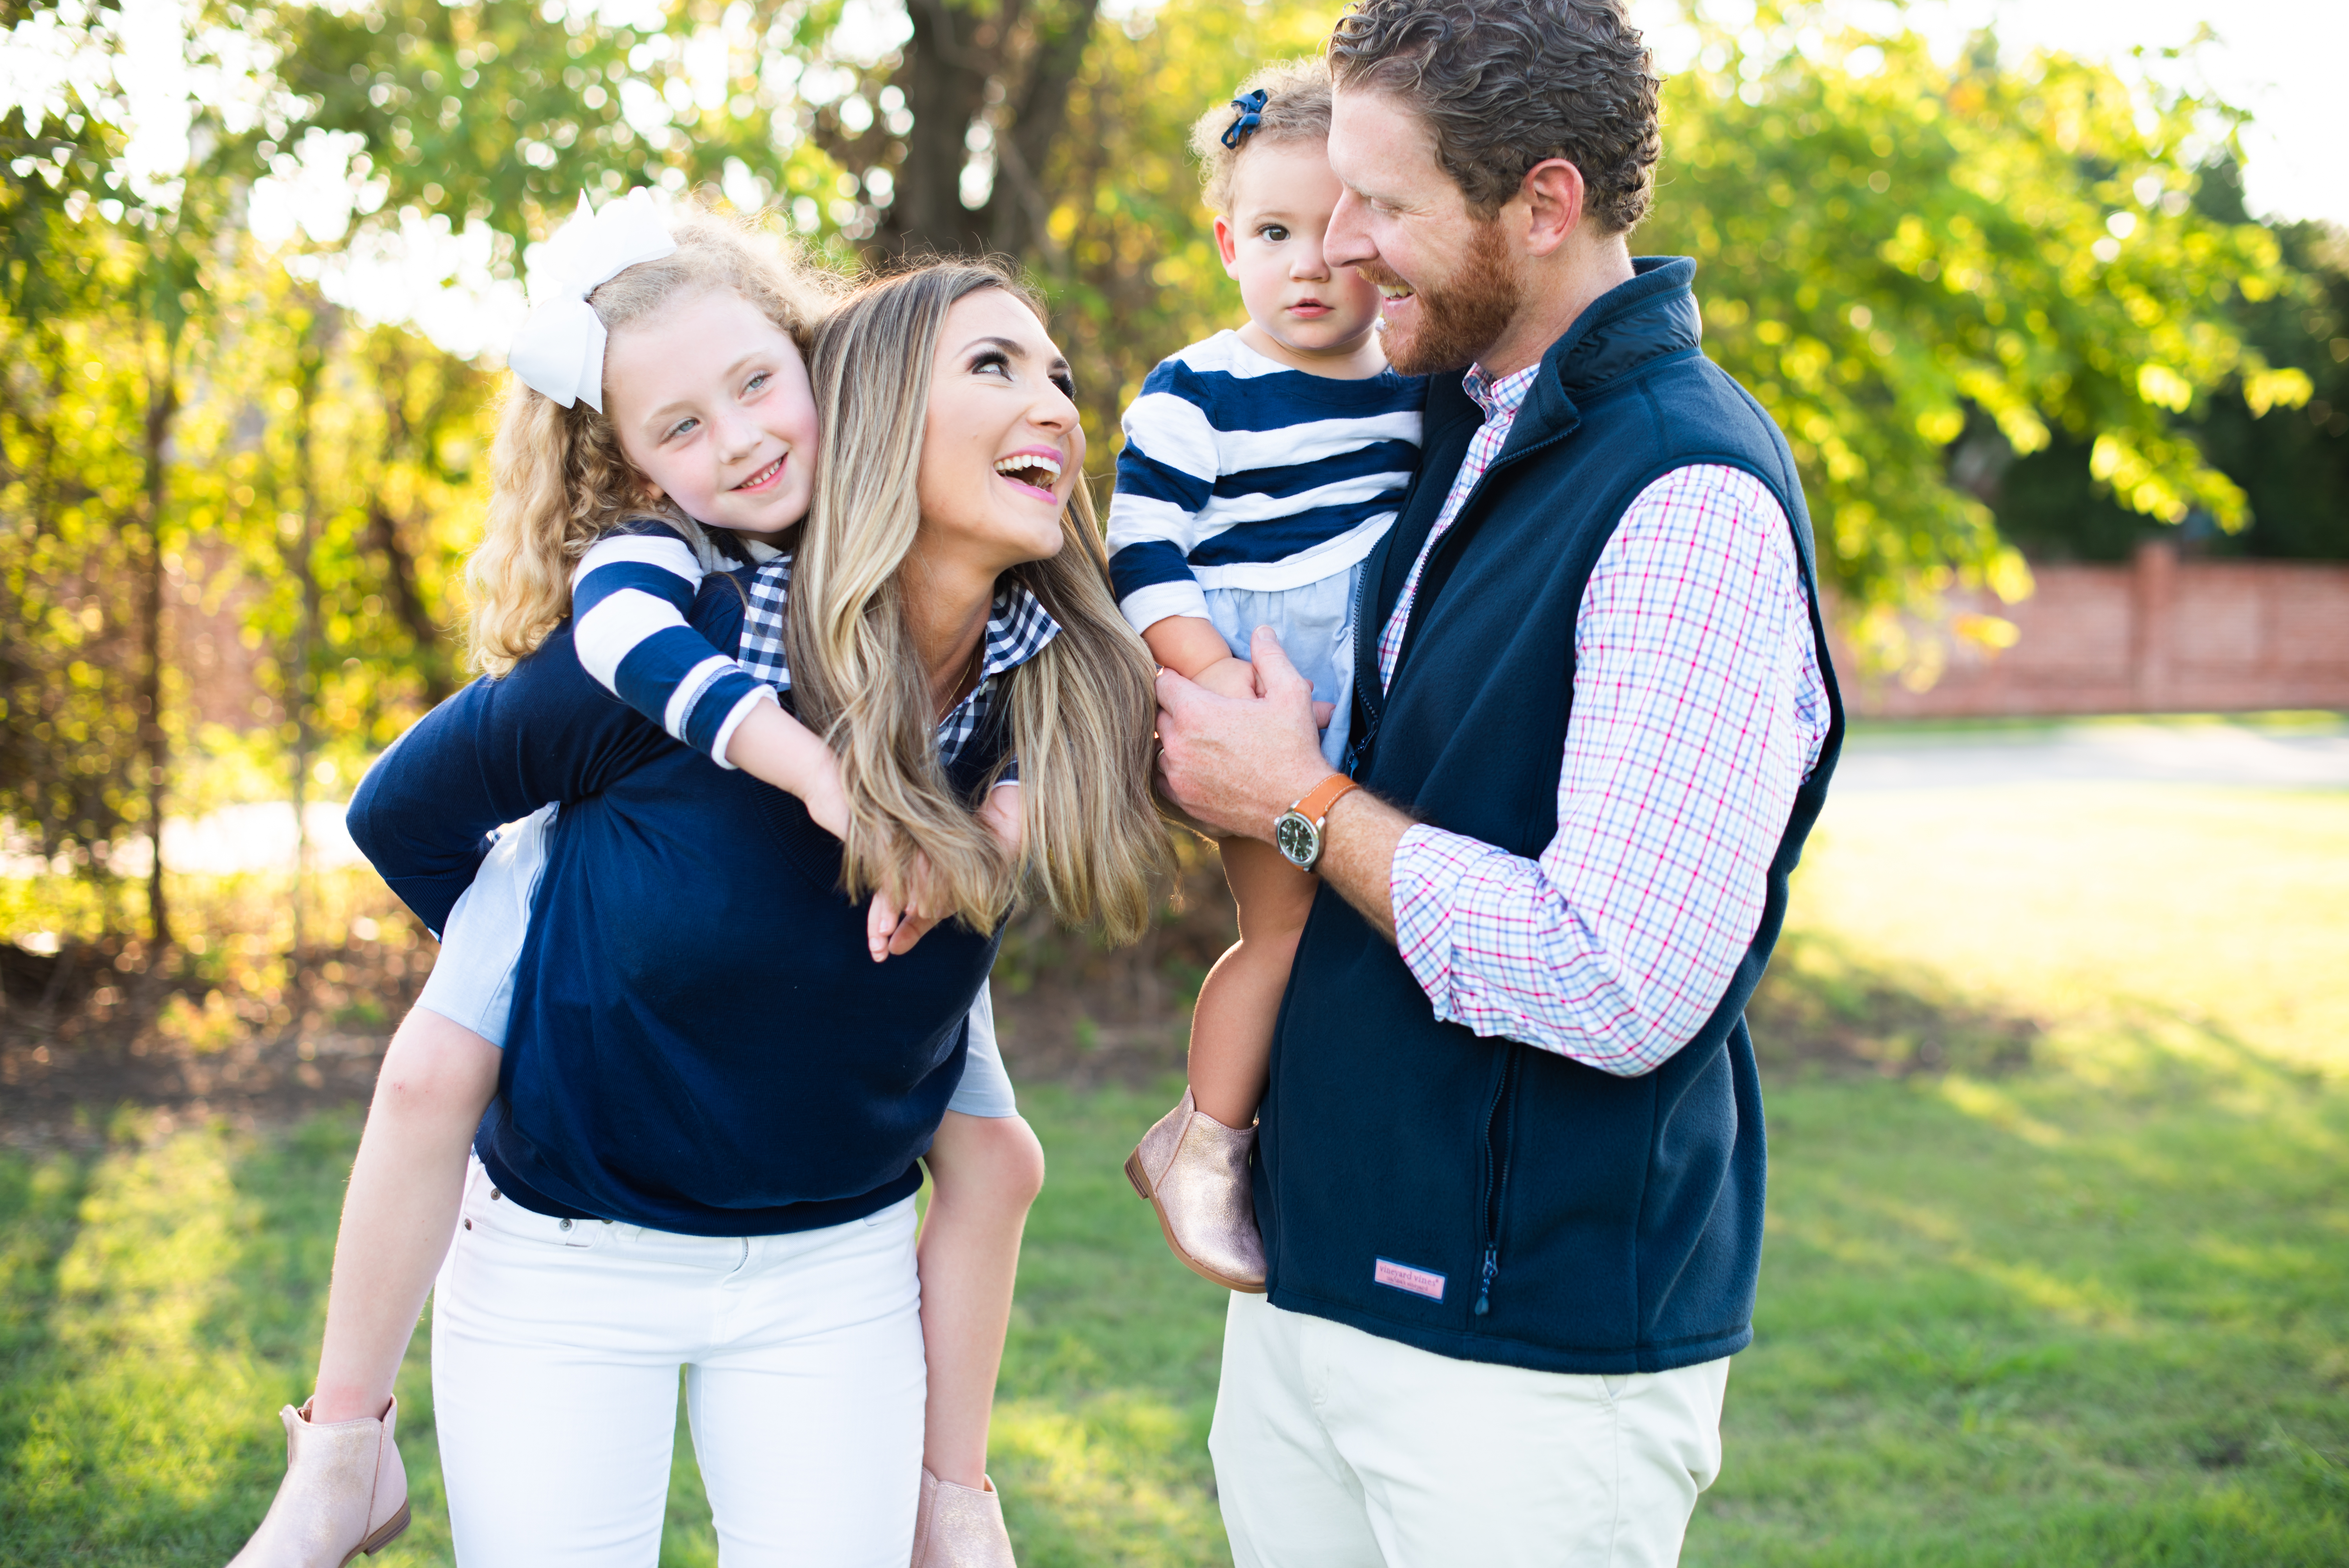 Vineyard Vines | What to Wear for Family Pictures this Fall | Tips, Tricks and Outfit Suggestions! featured by popular Dallas fashion blogger Style Your Senses